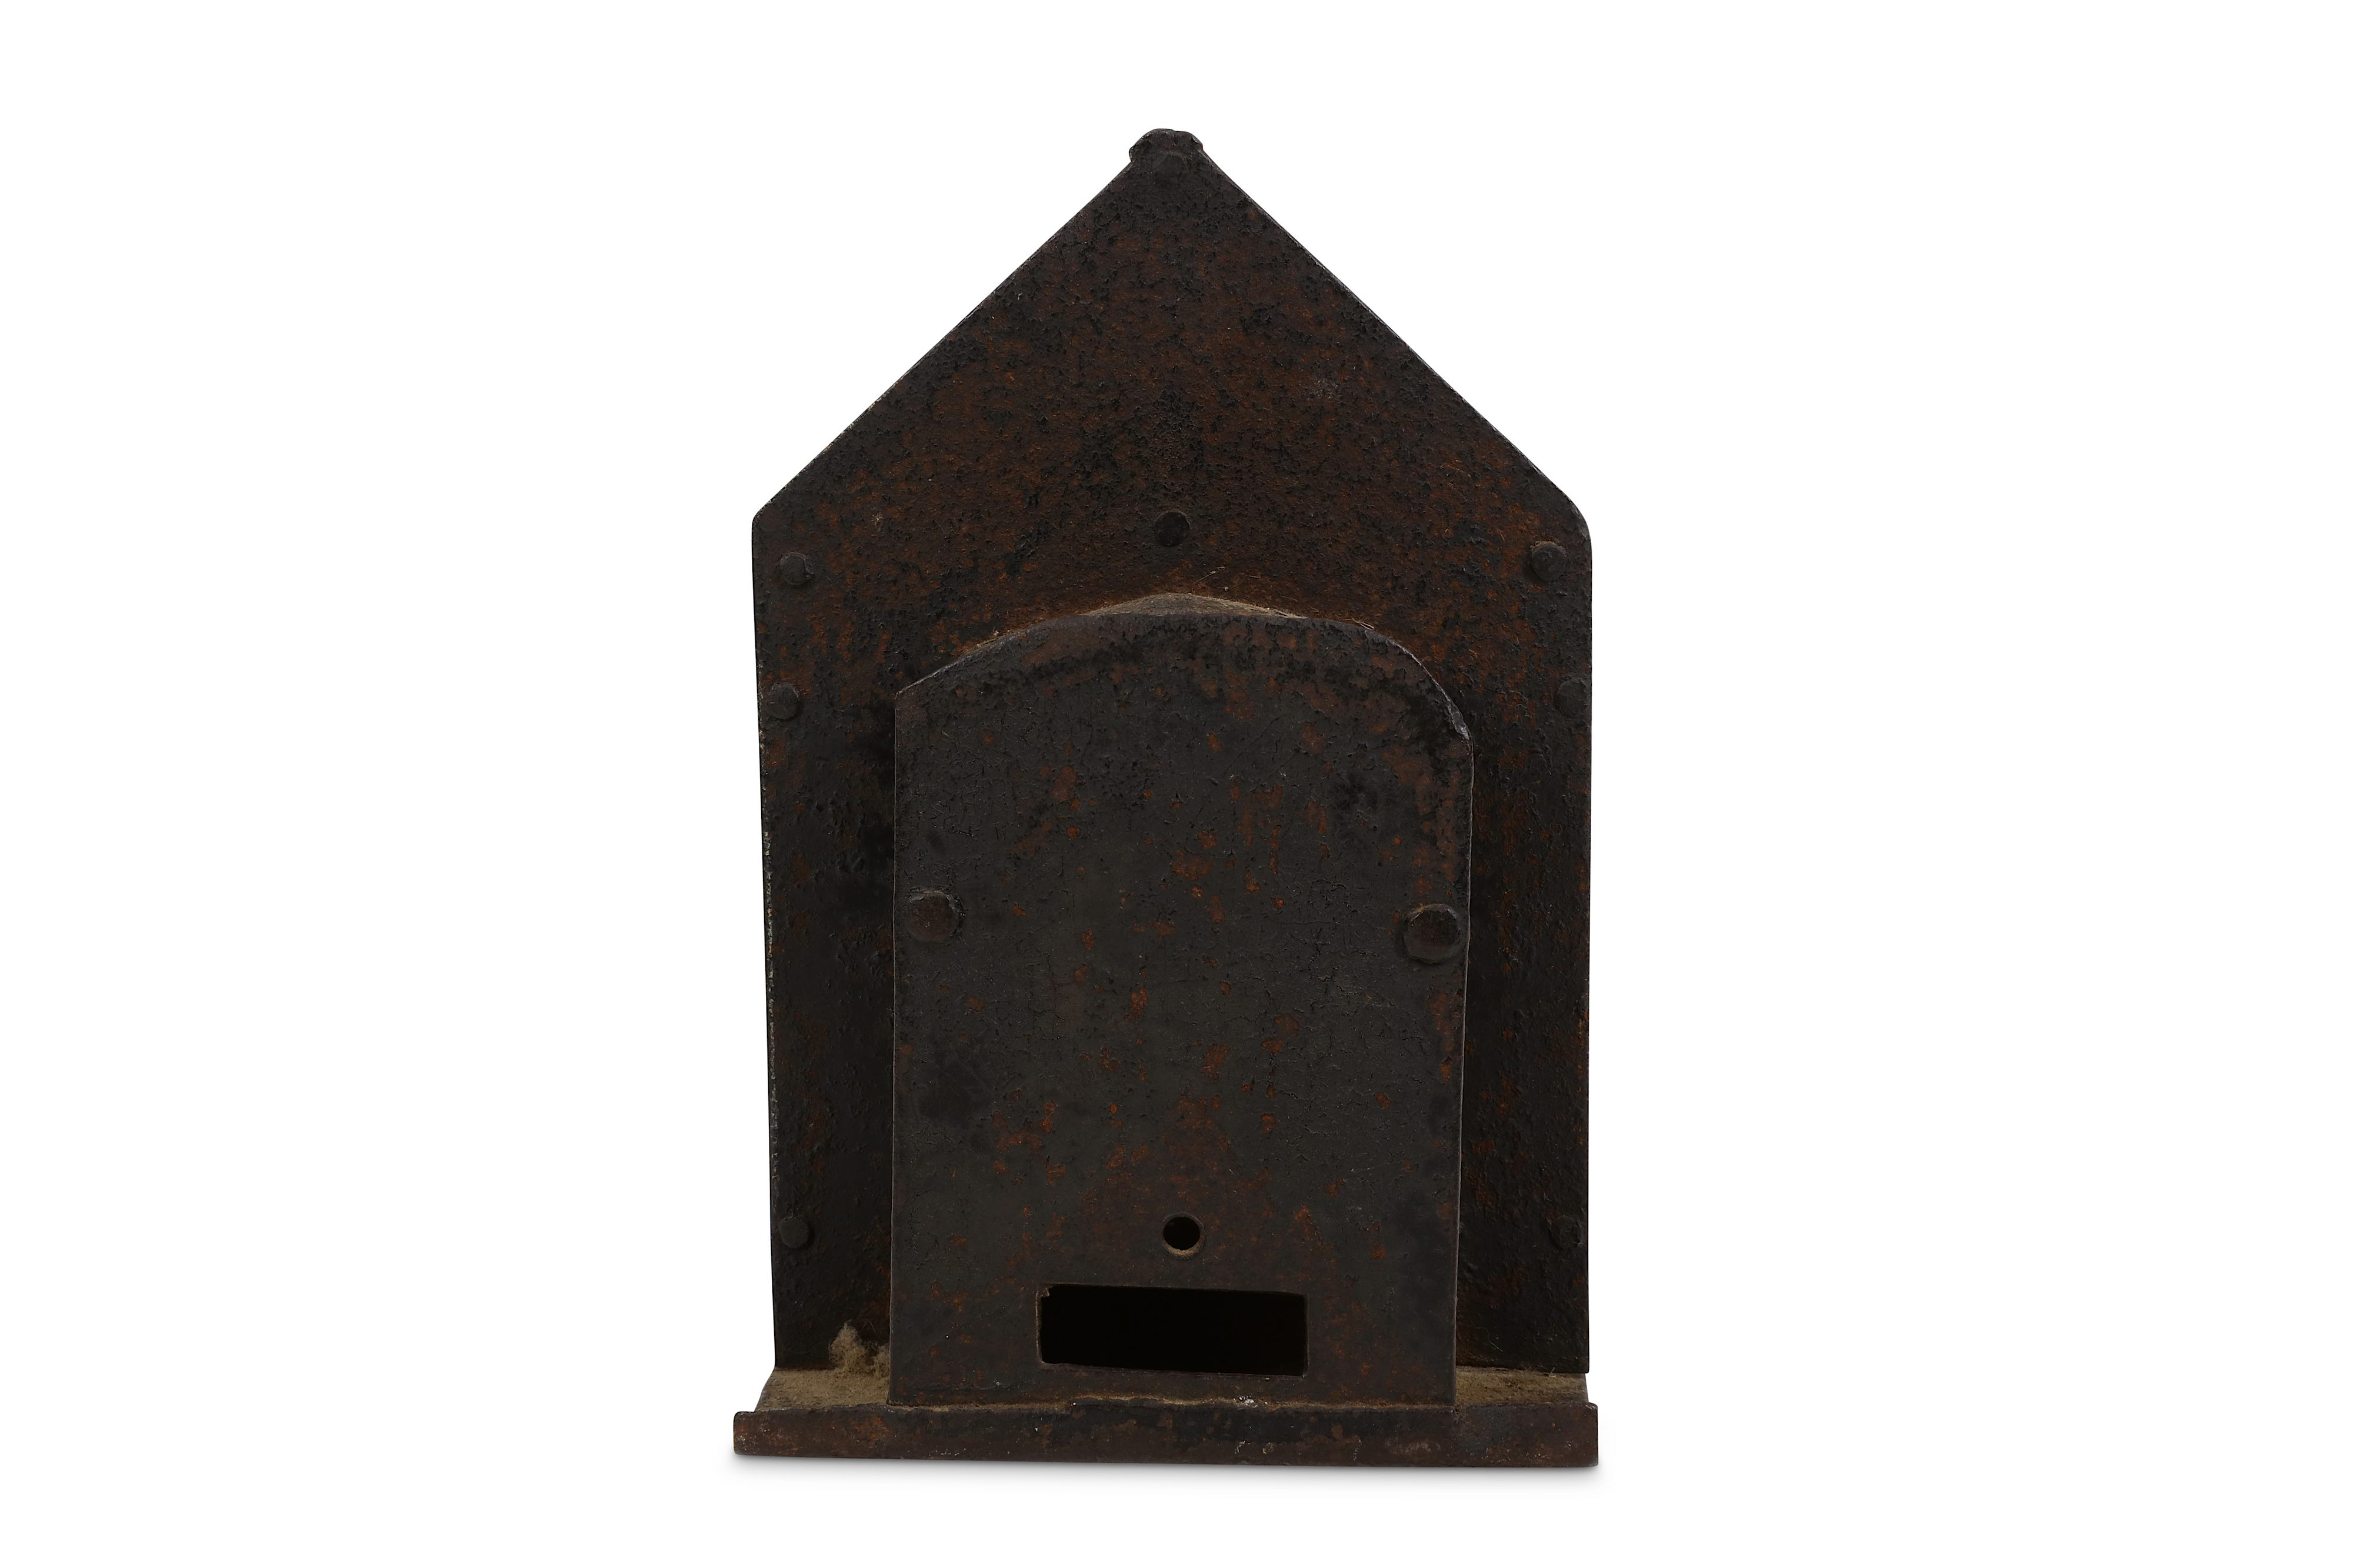 Lot 42 - A 19/20TH CENTURY STONEWARE MONEY BOX IN THE FORM OF A COTTAGE